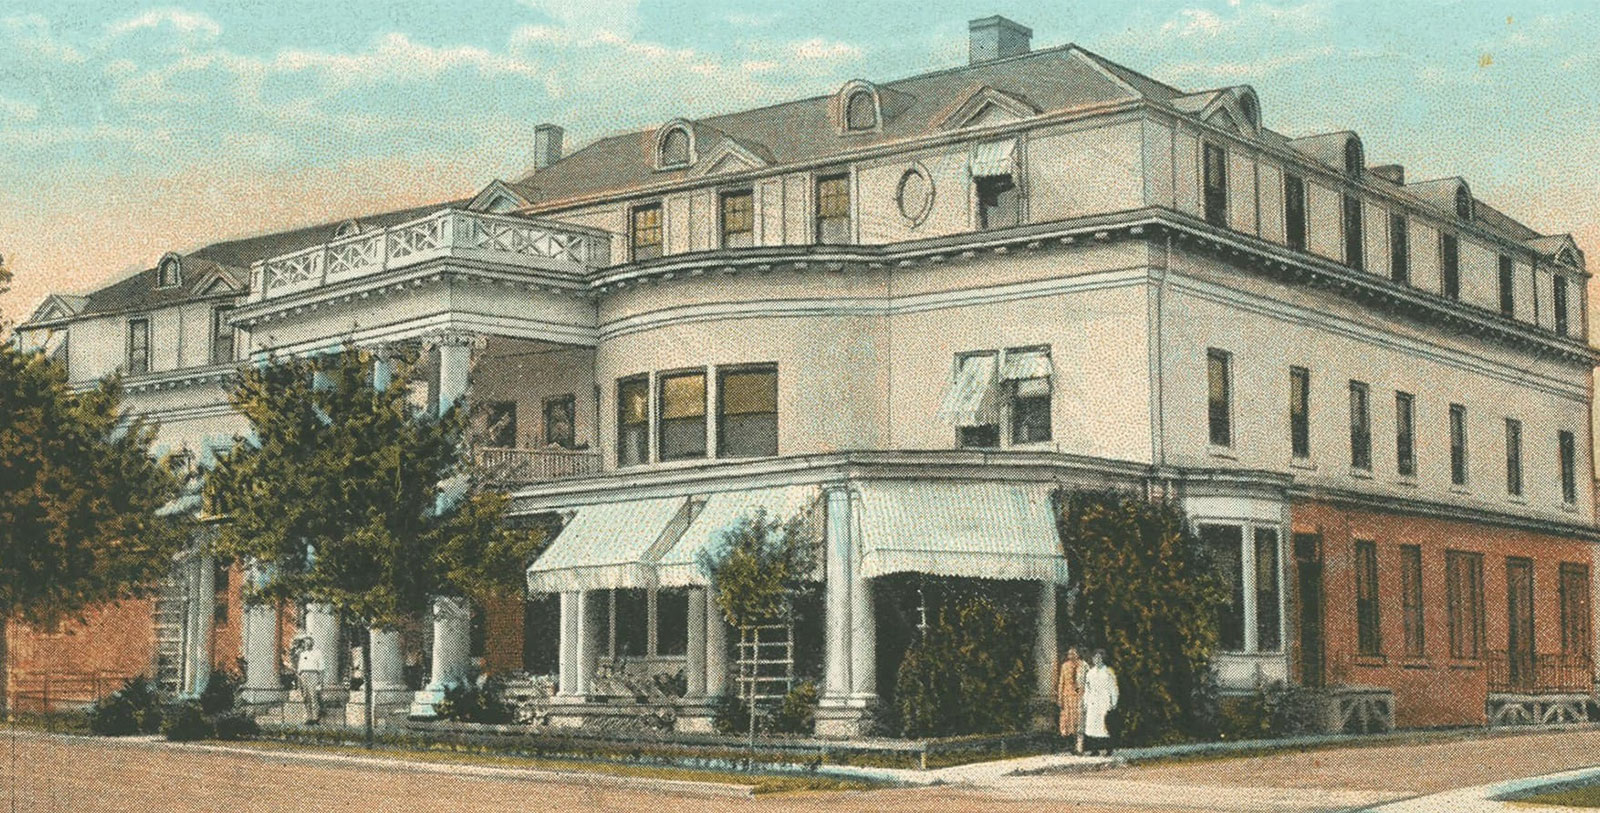 Image of Historic Hotel Exterior at Boone Tavern Hotel of Berea College, 1909, Member of Historic Hotels of America, in Berea, Kentucky, History